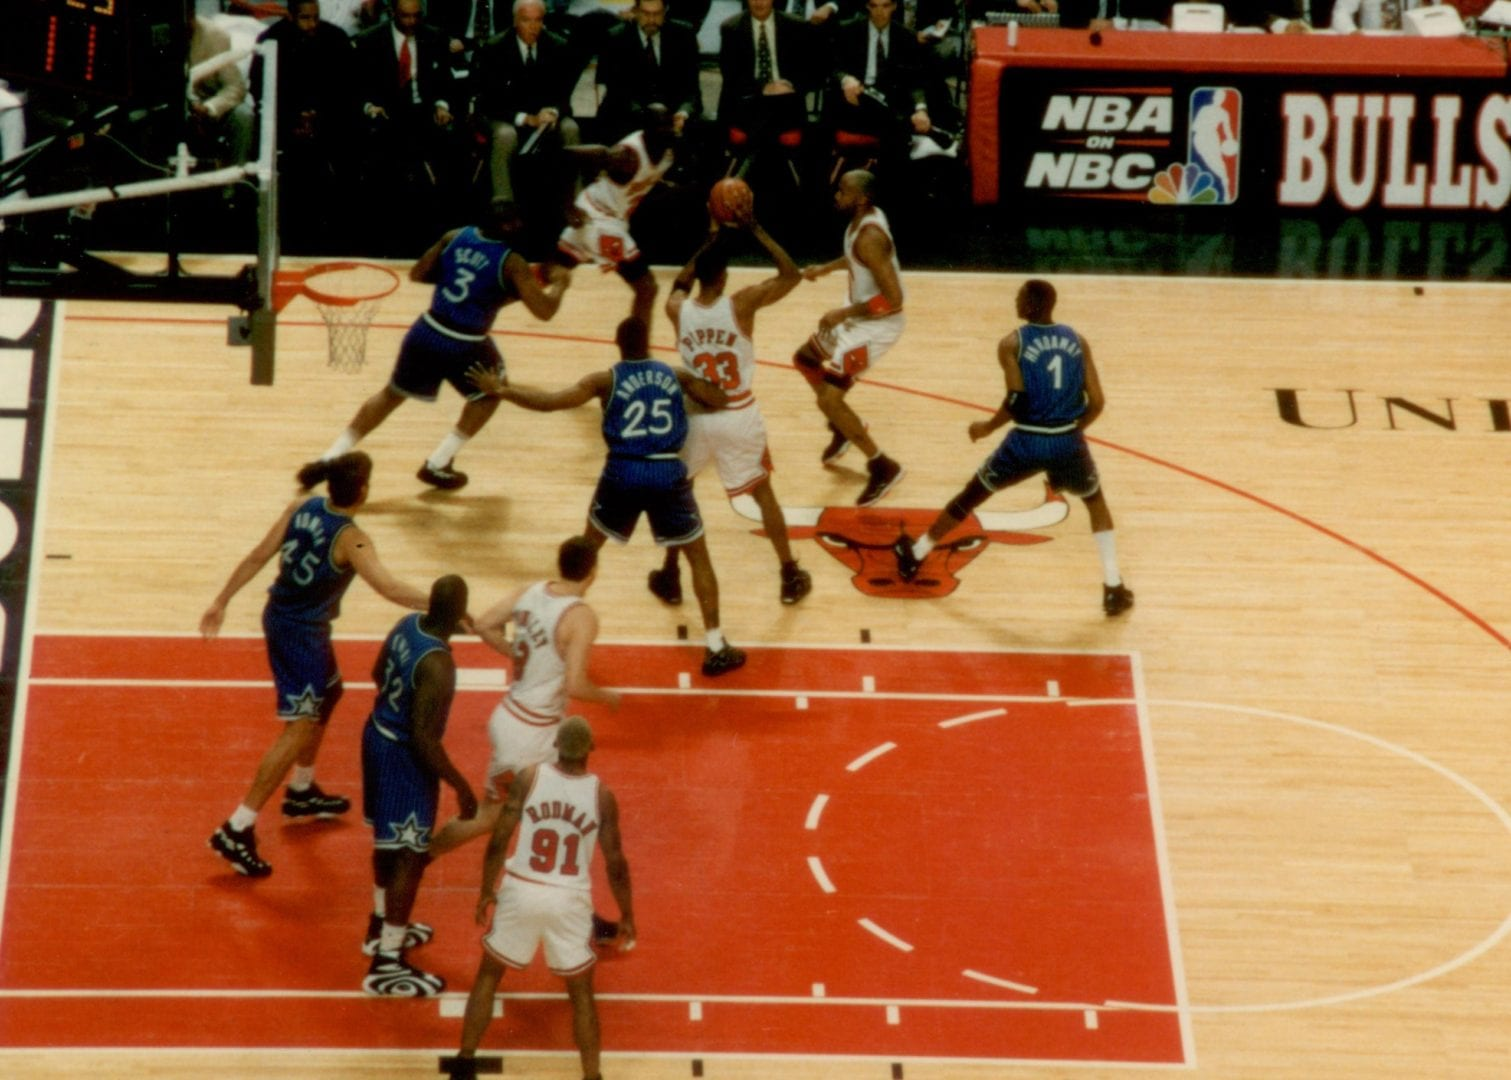 Players in blue doing a defense